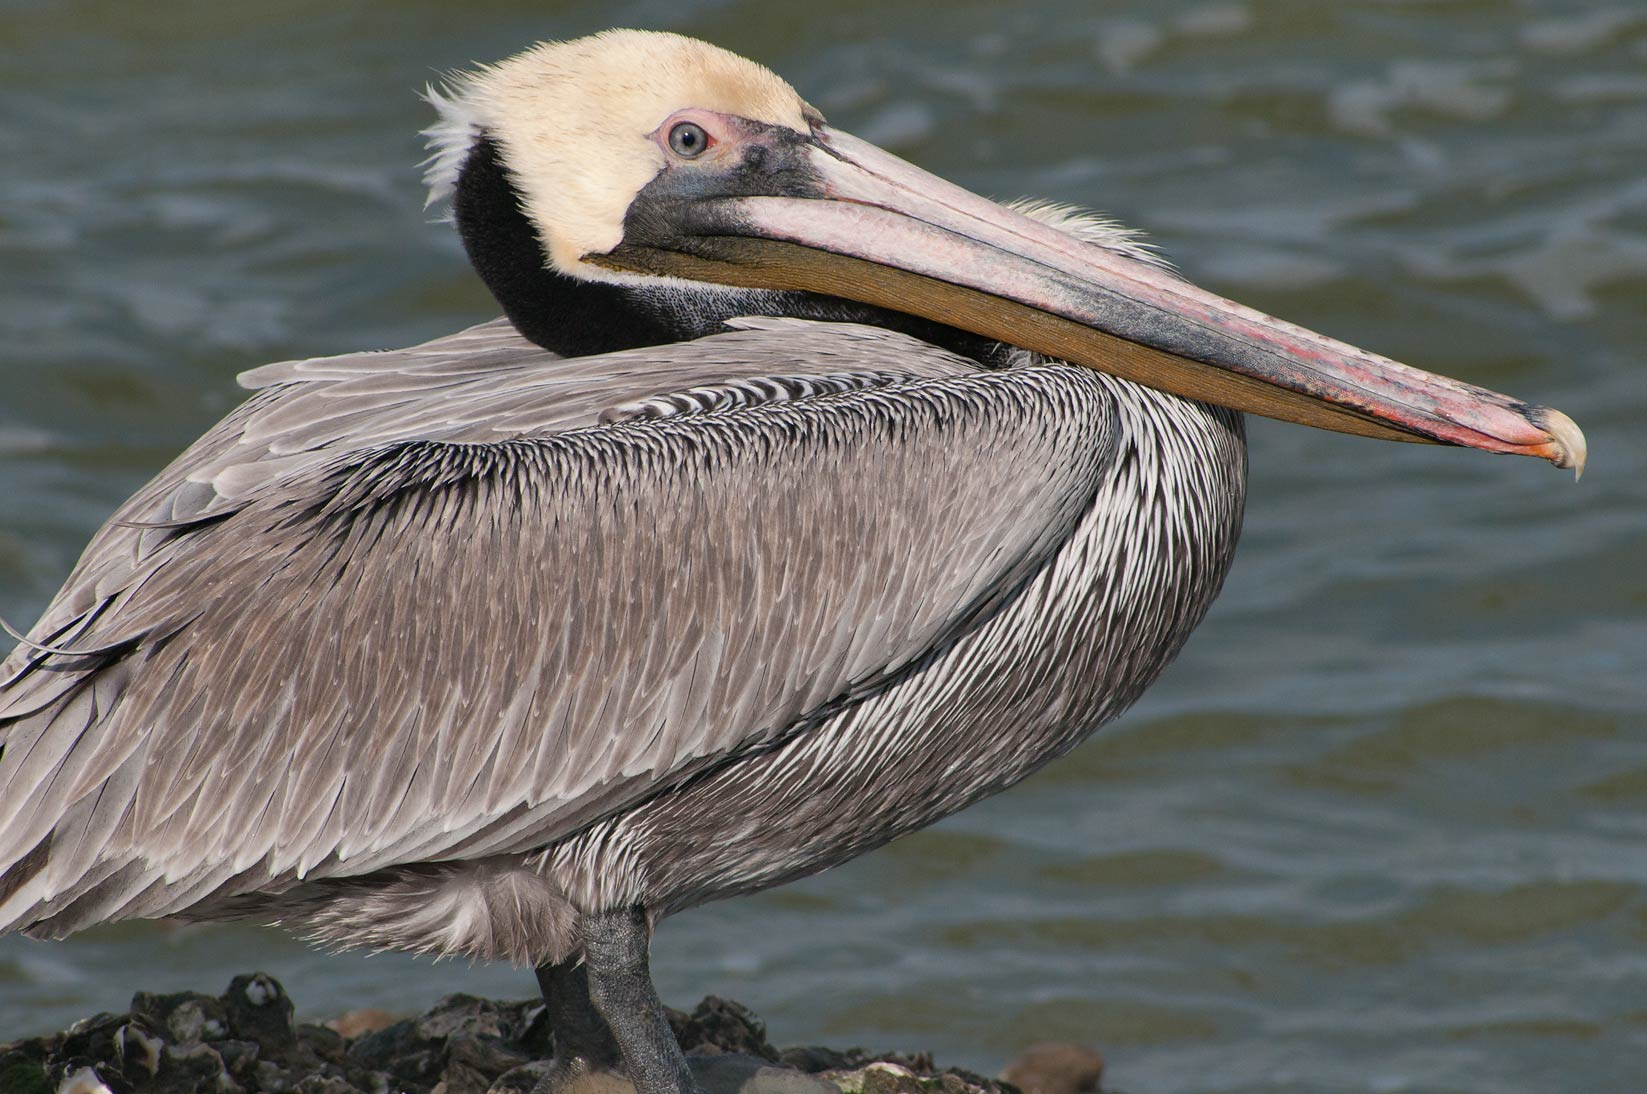 Brown pelican sitting on rocks below Pier 21. Galveston, Texas